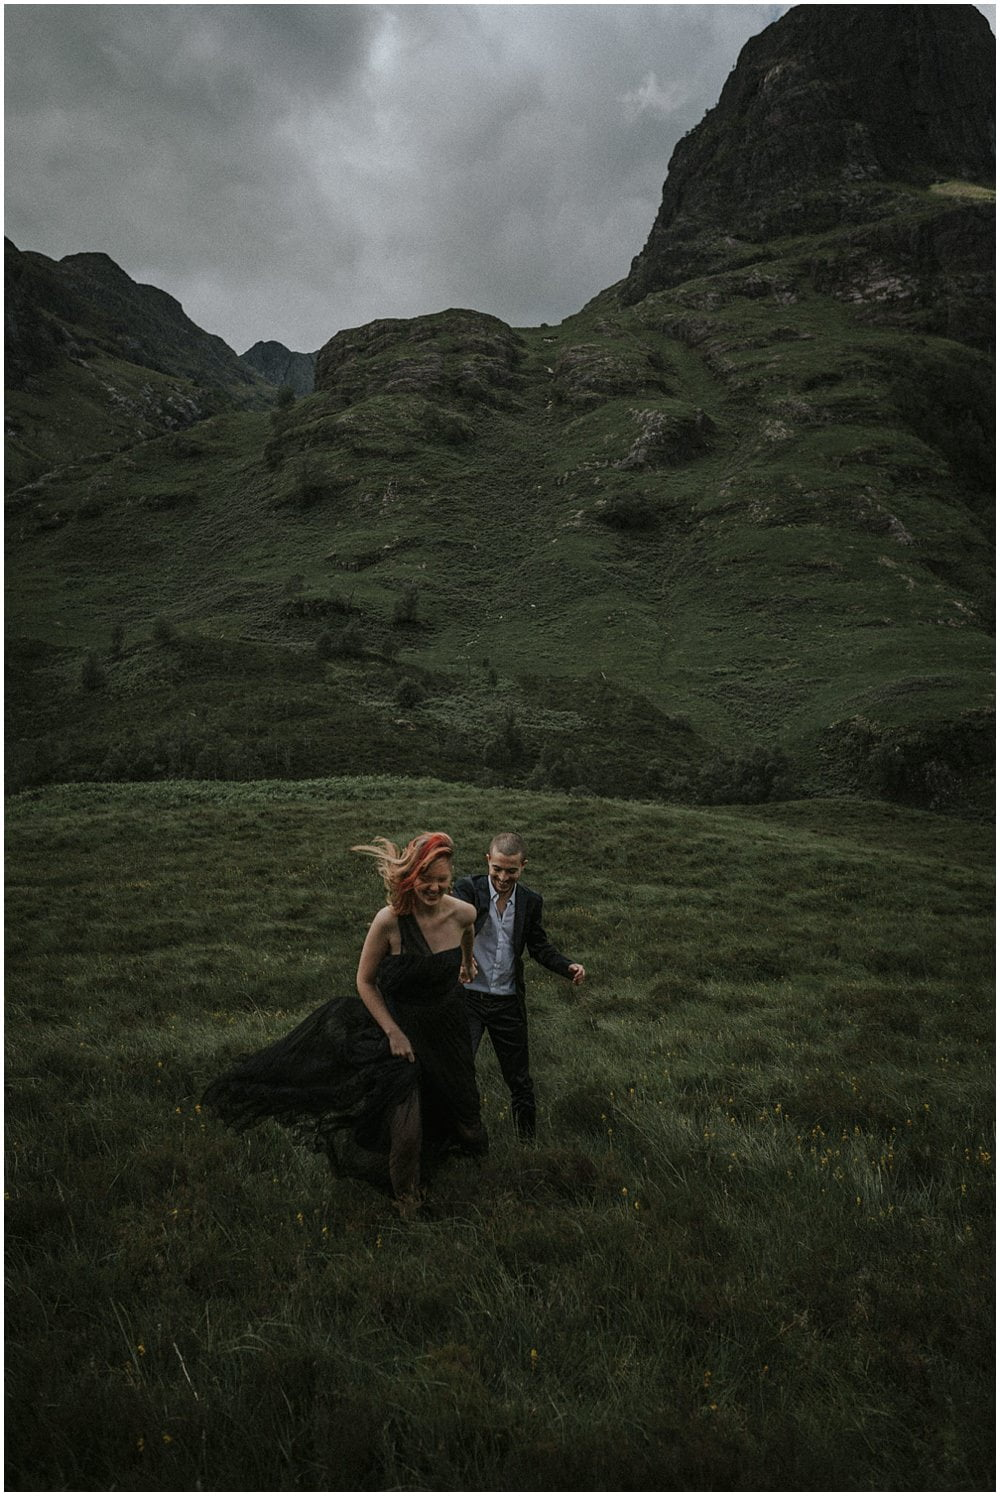 Adventurous Couples Photo Session in Glencoe, Three Sisters, JKL Duo, Glasgow musicians photo shoot in Glencoe Valley